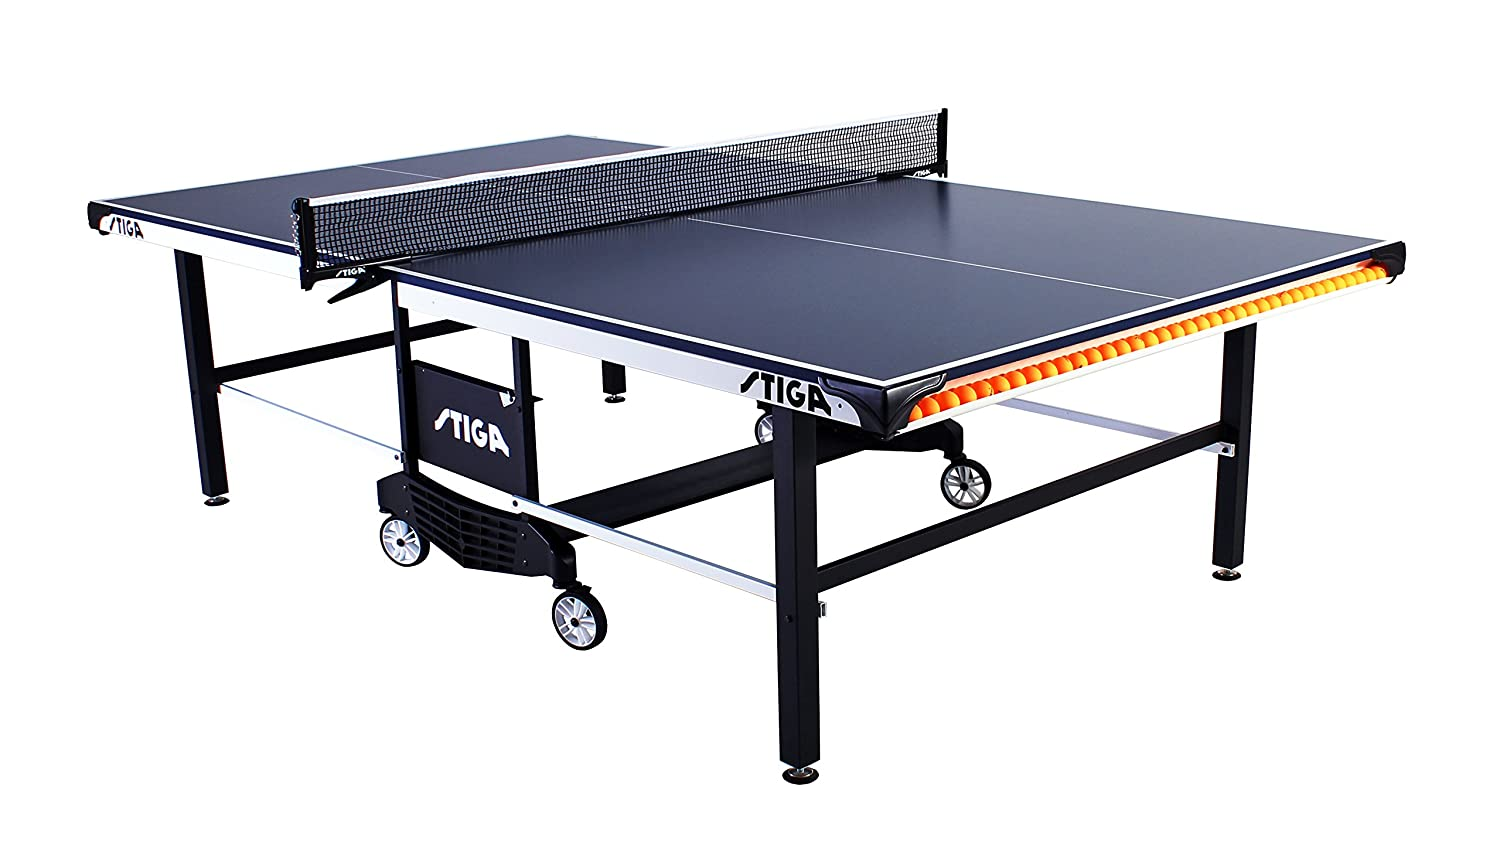 Amazon.com : STIGA STS 385 Table Tennis Table : Ping Pong Stiga : Sports U0026  Outdoors